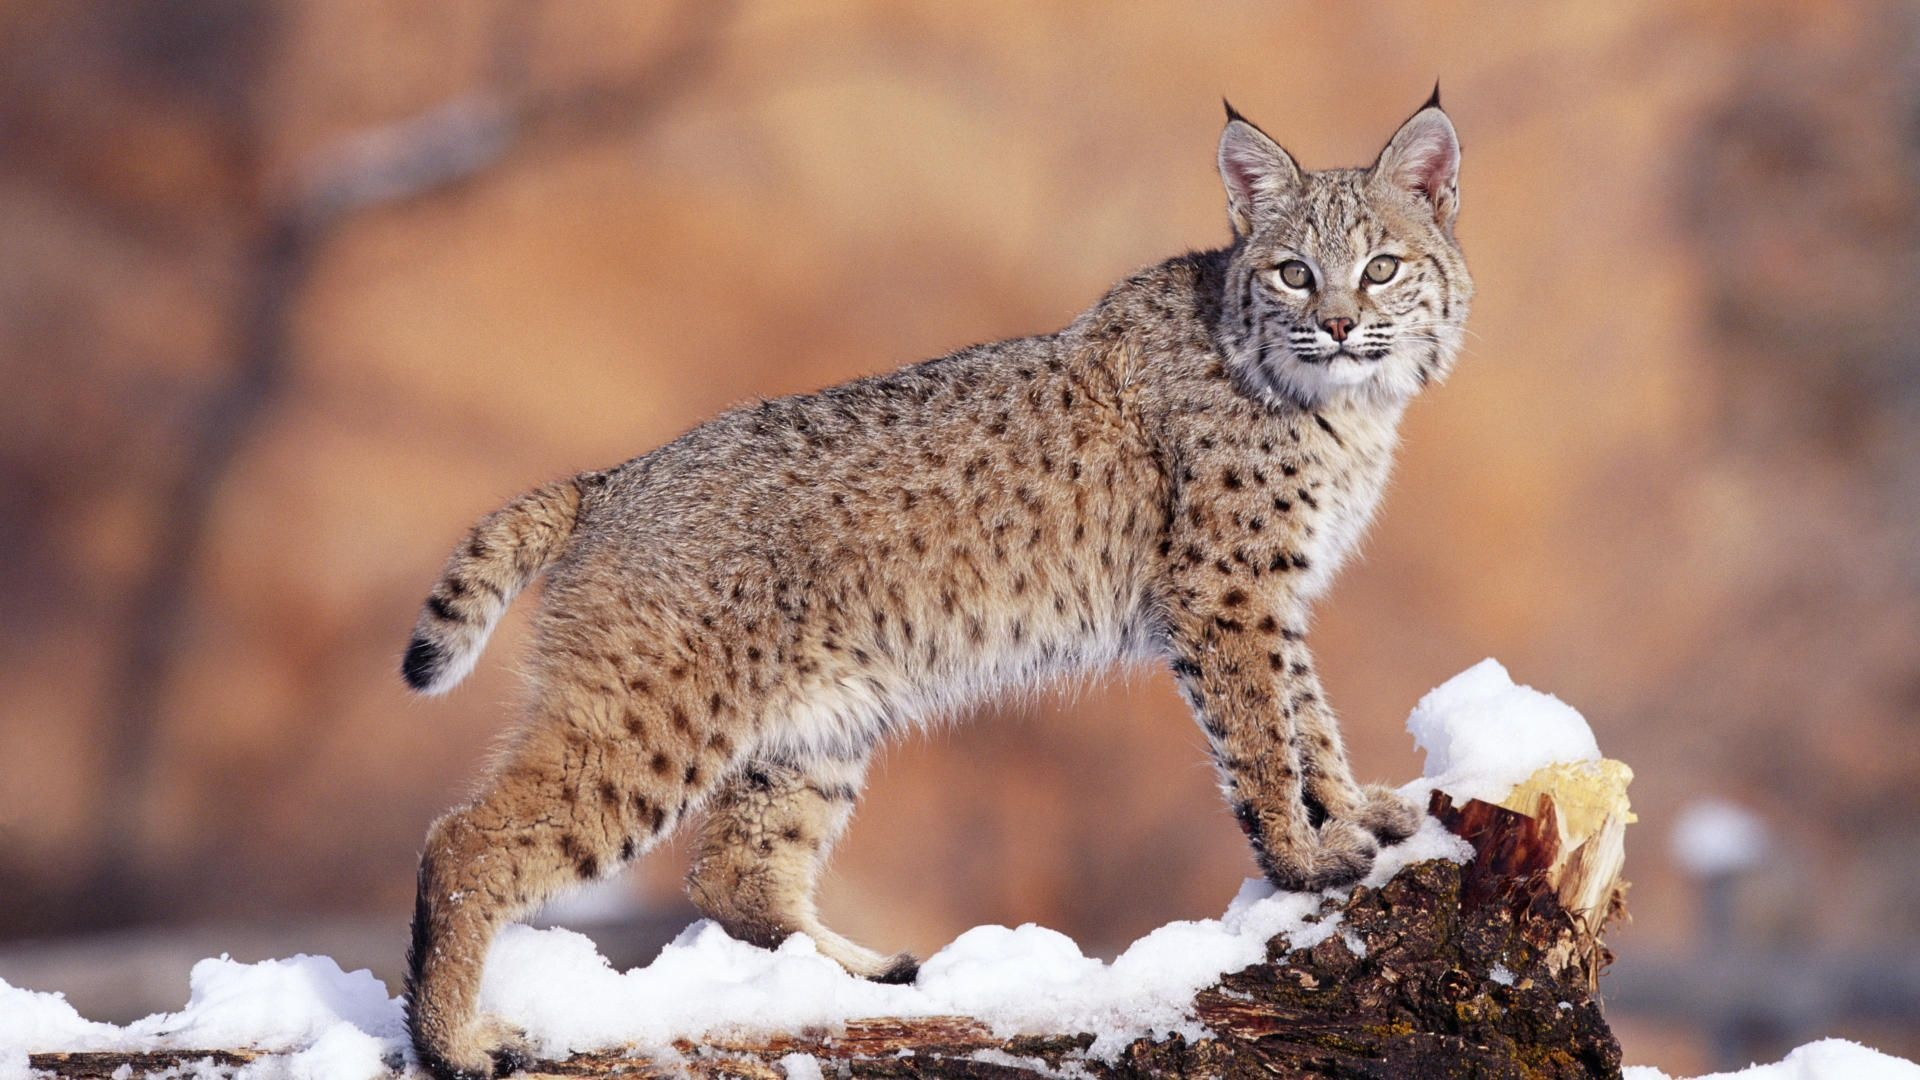 Wild Cat Wallpapers - WallpaperSafari